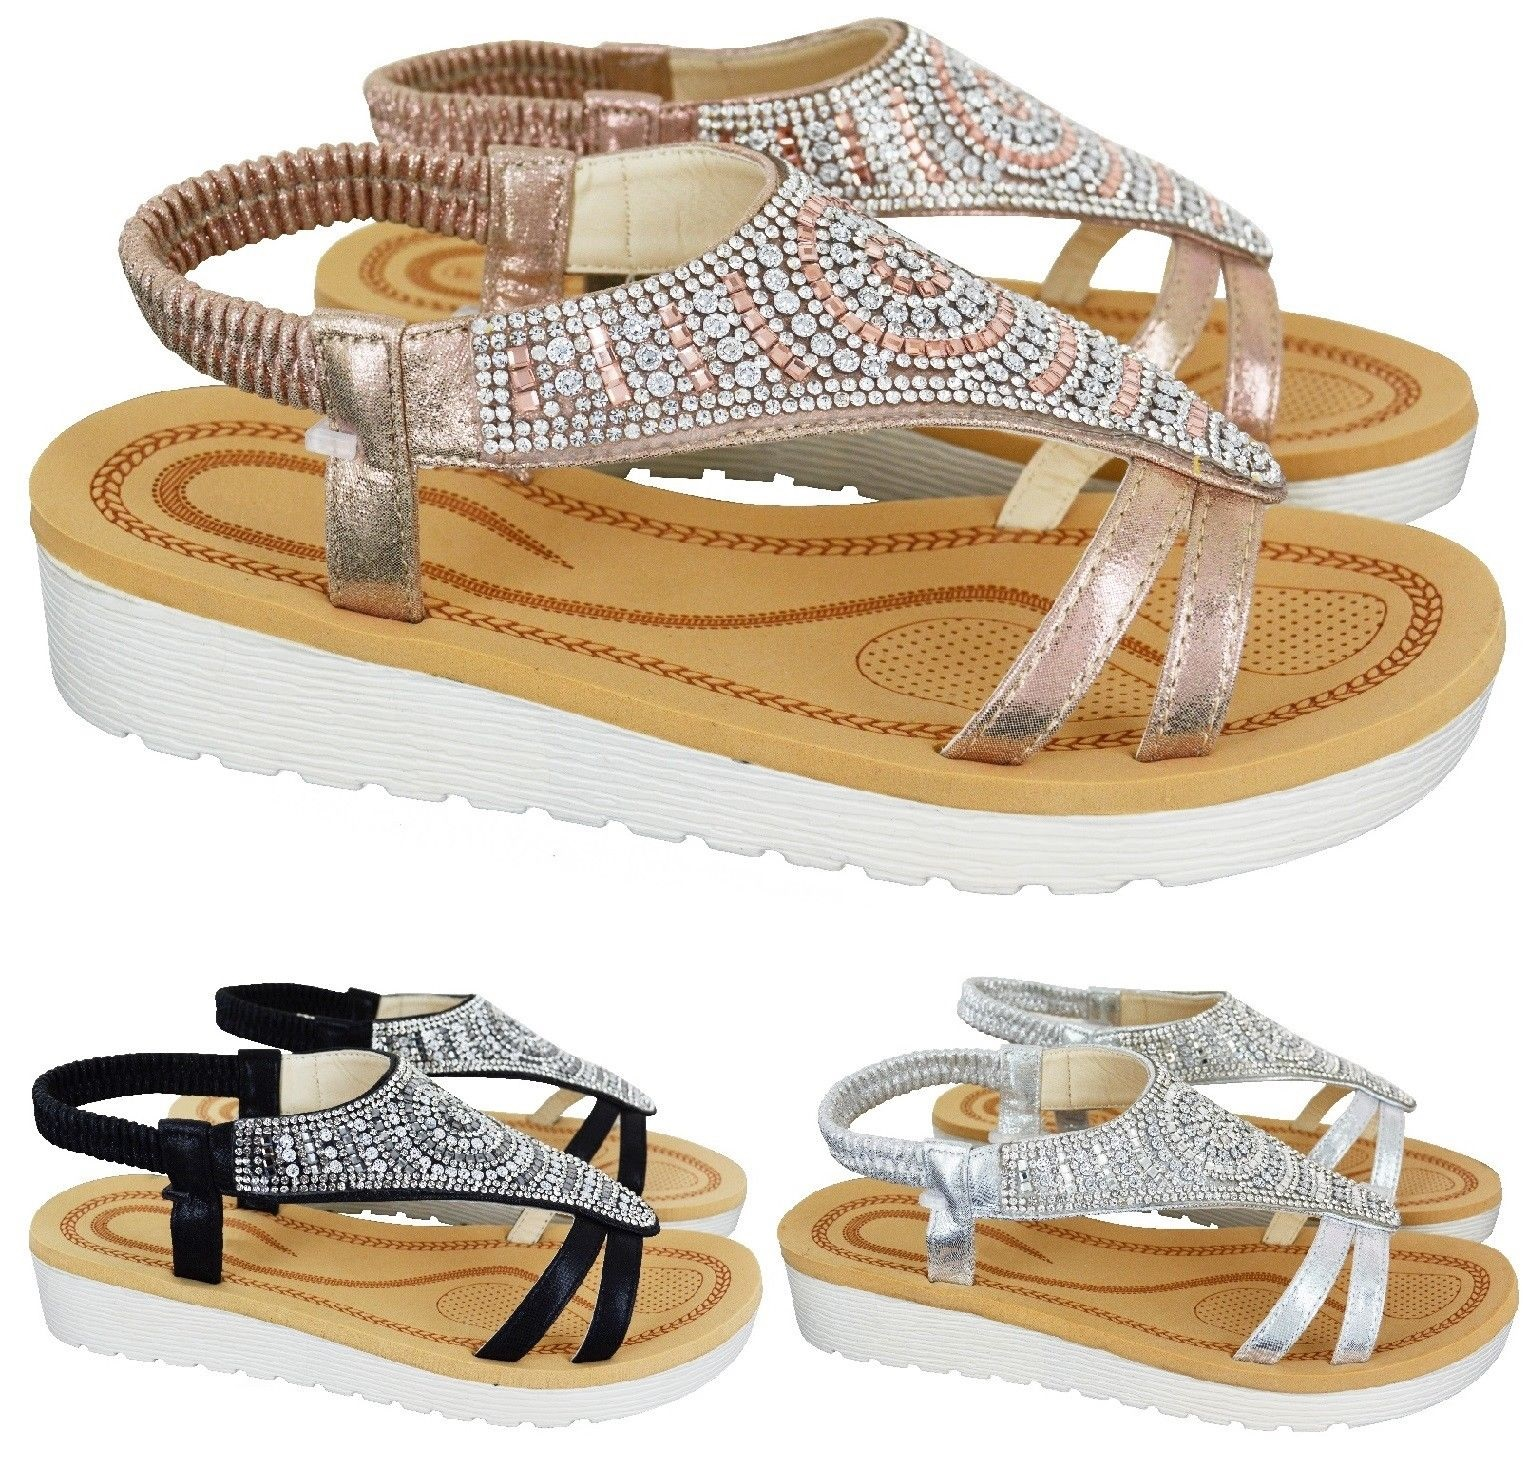 763677e9d8 Sentinel LADIES WOMENS SUMMER COMFORT DIAMANTE FLAT LOW HEEL WEDGE SANDALS  SHOES SIZE